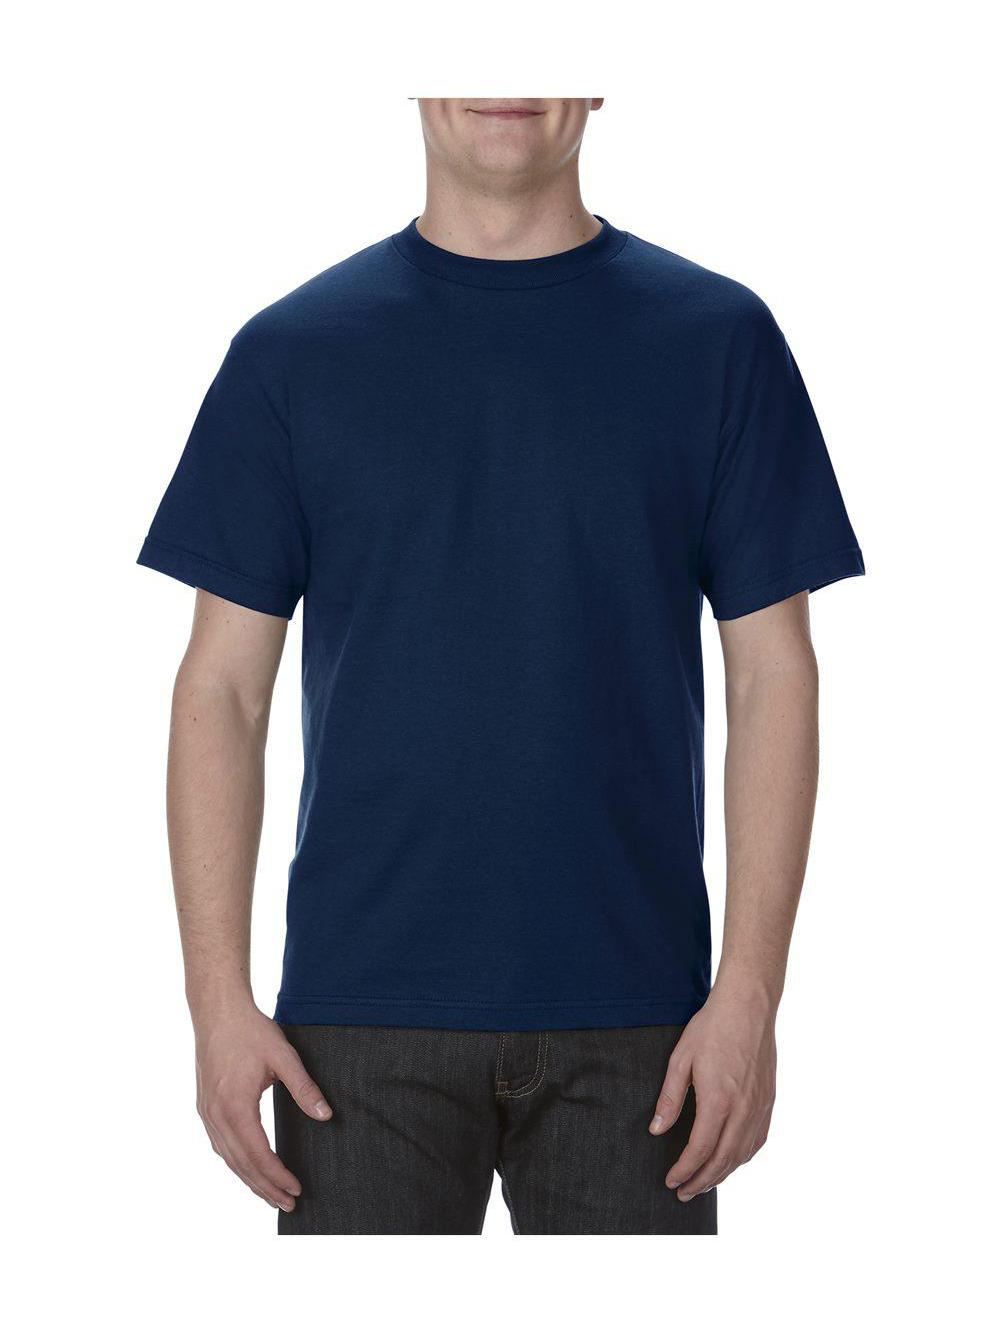 ALSTYLE-Classic-T-Shirt-1301 thumbnail 52